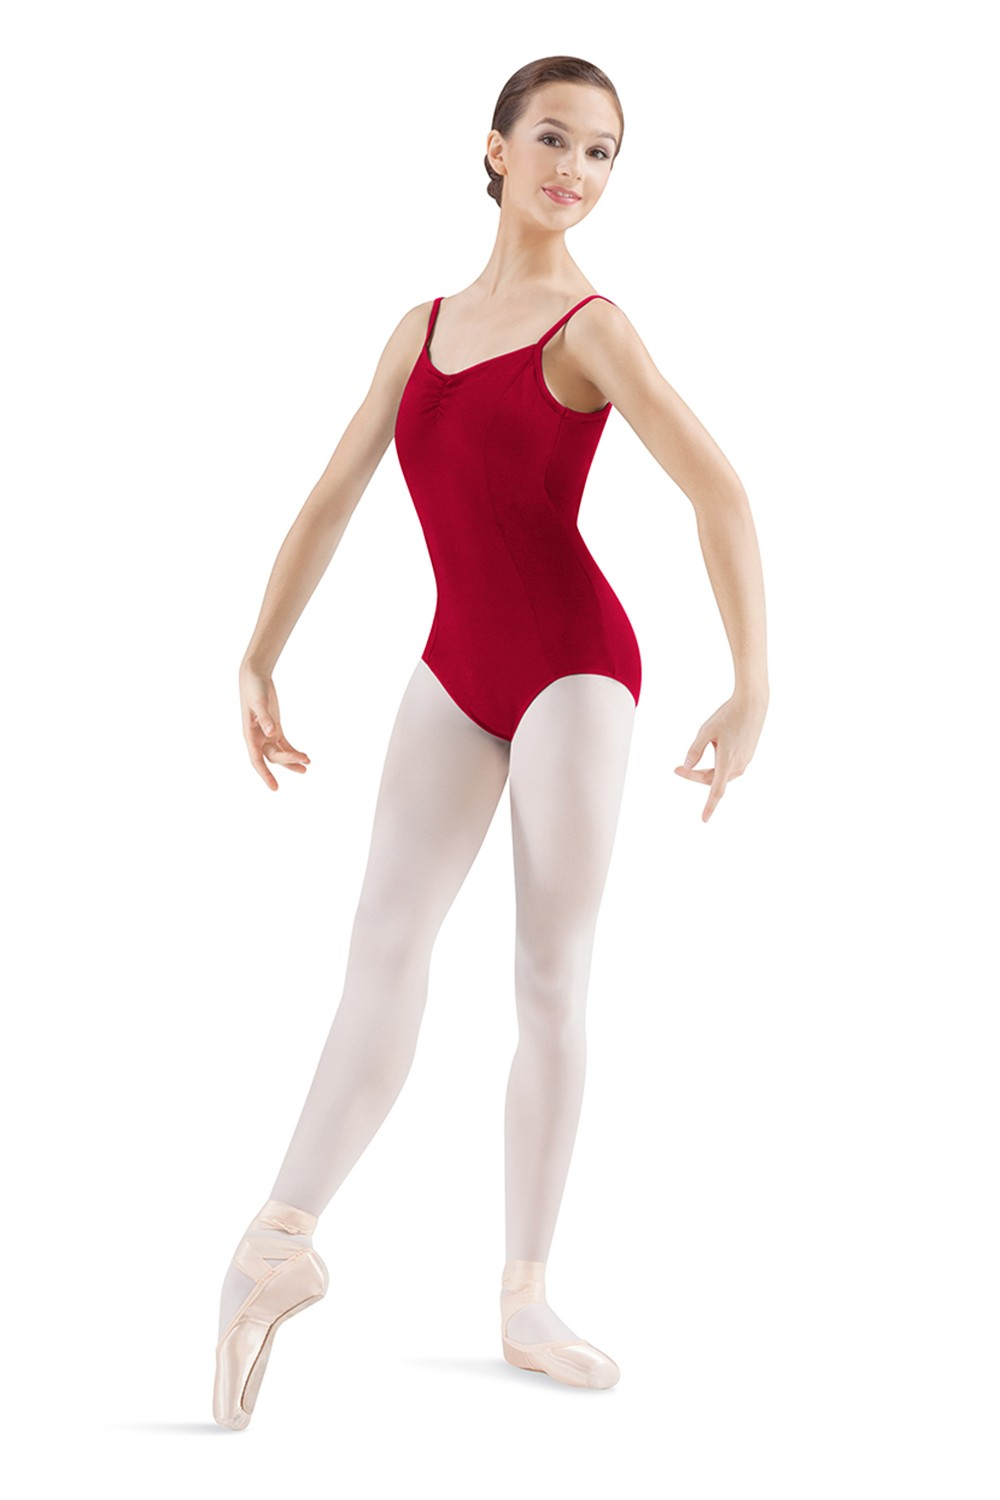 Body A Spallina Sottile Con Cuciture Principessa Women's Dance Leotards